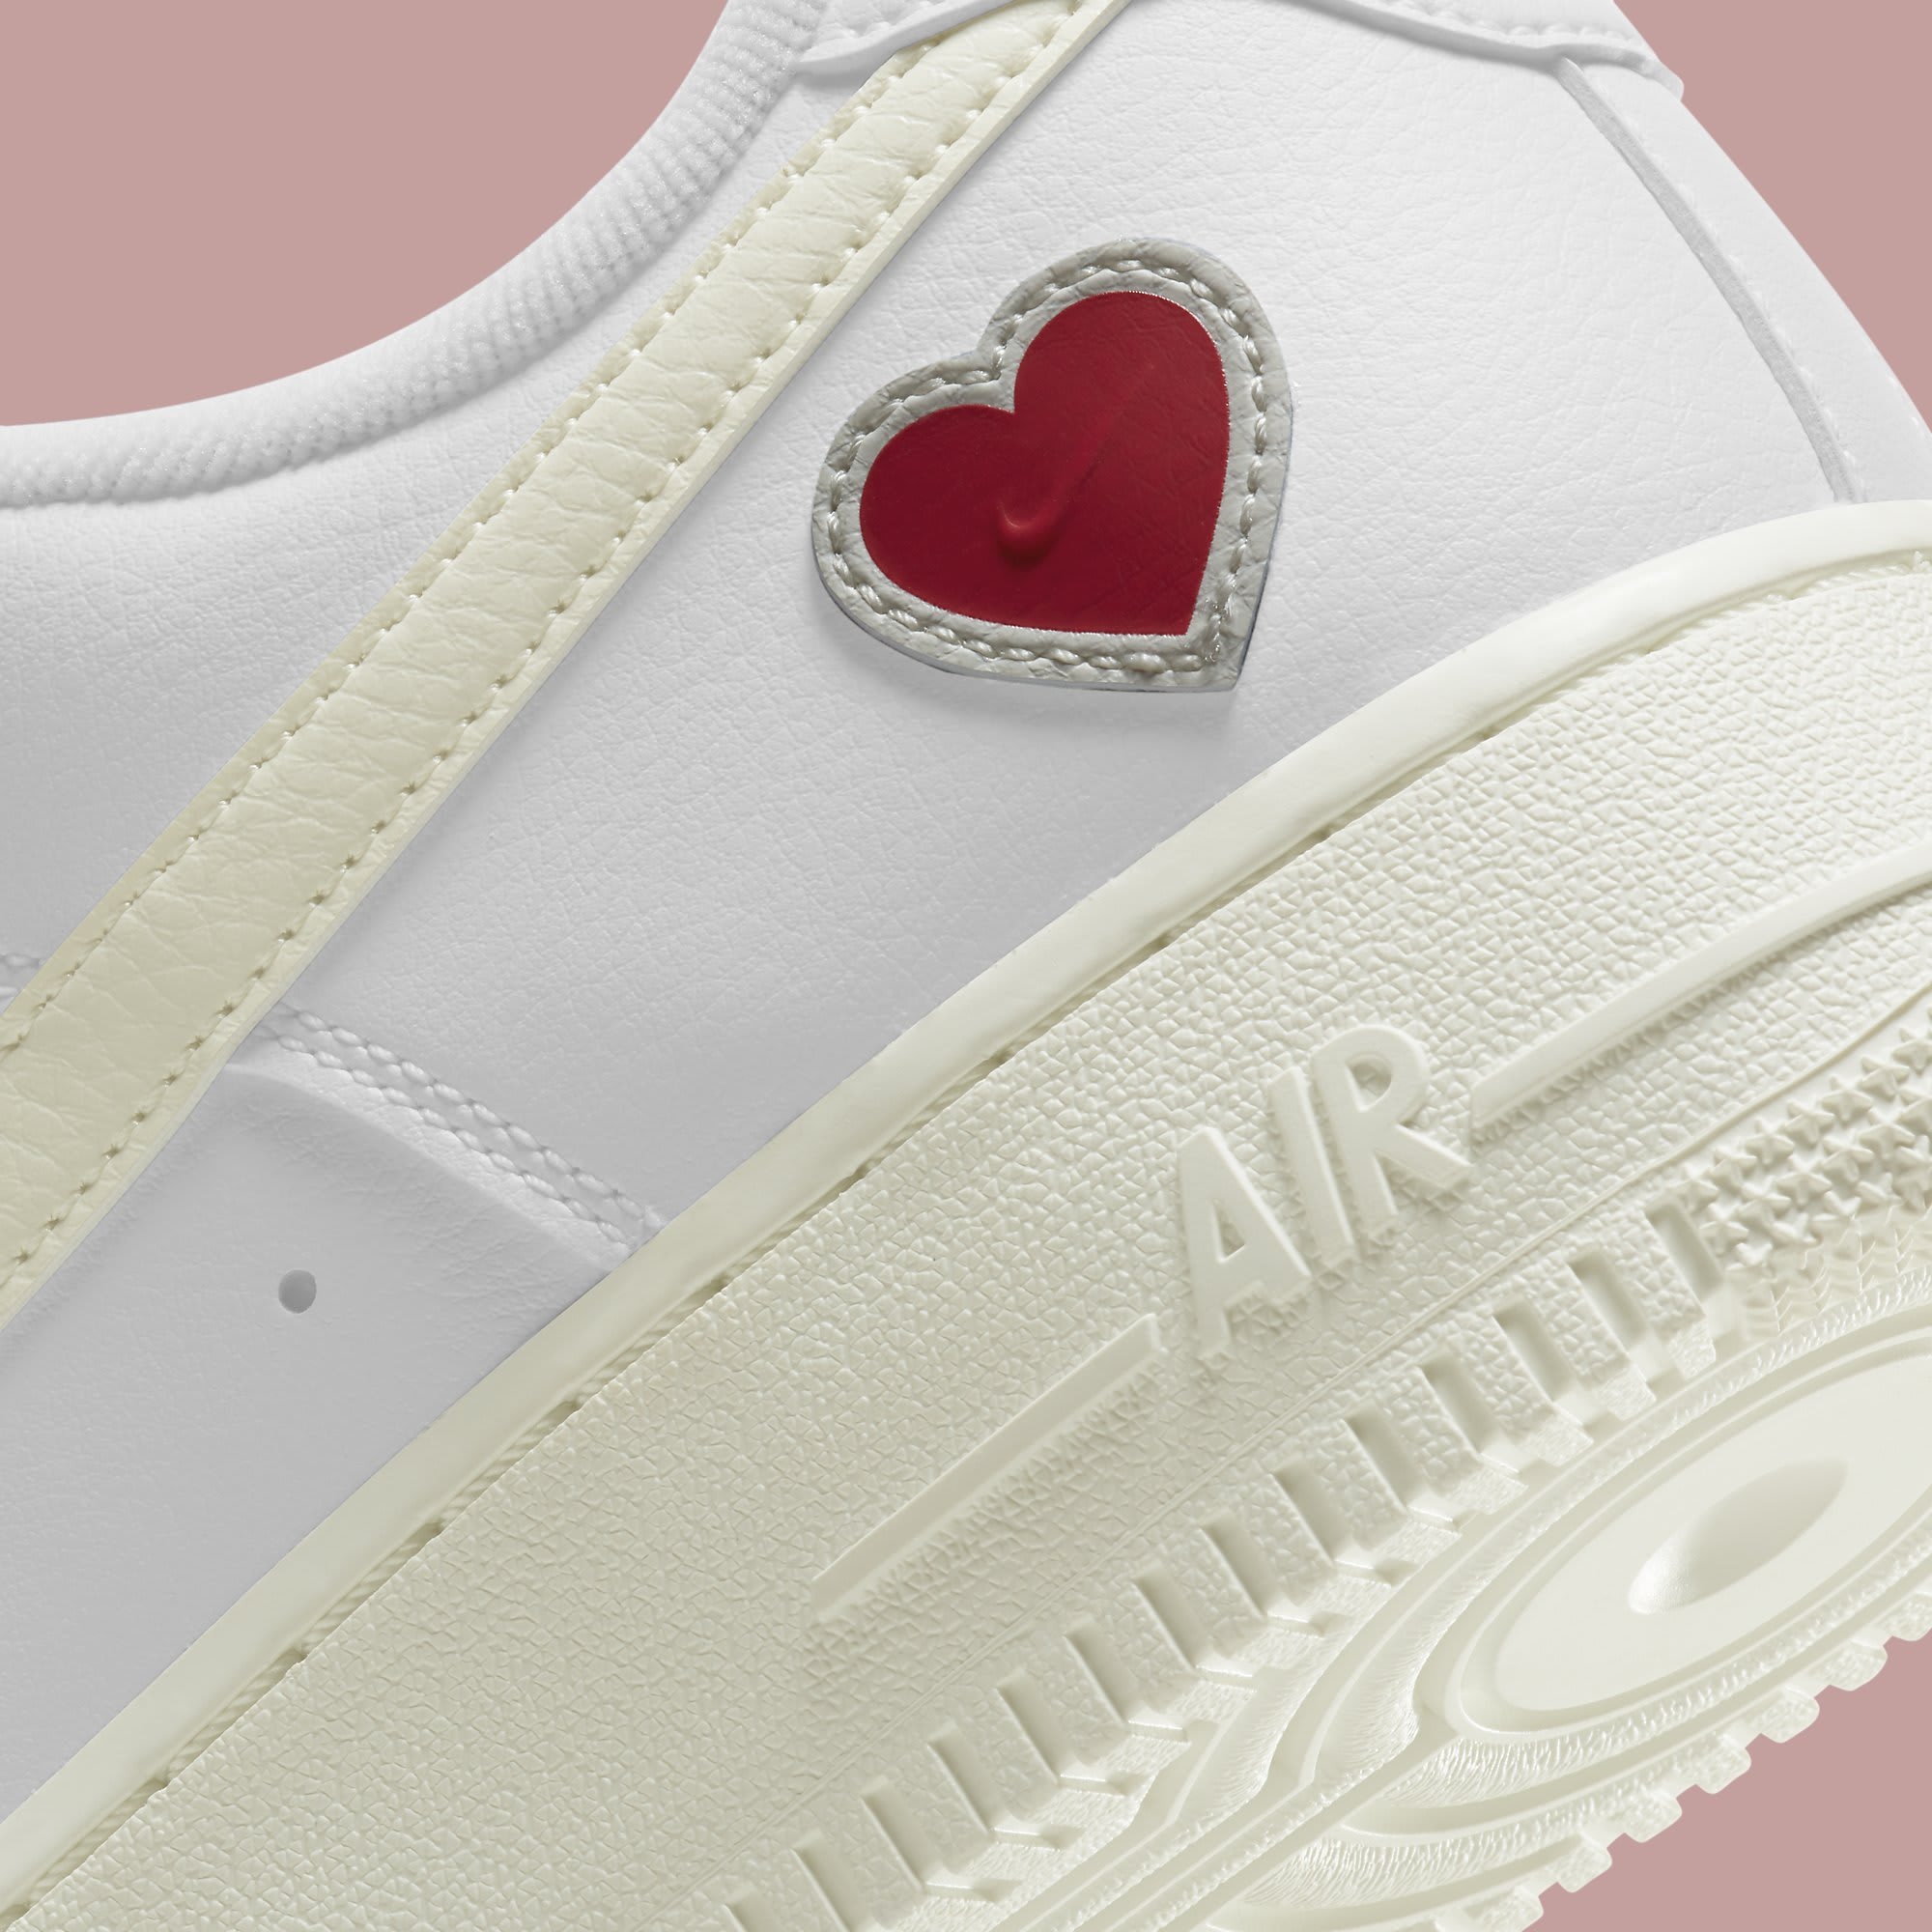 Nike Air Force 1 Low Valentine's Day 2021 Release Date DD7117-100 Heel Detail